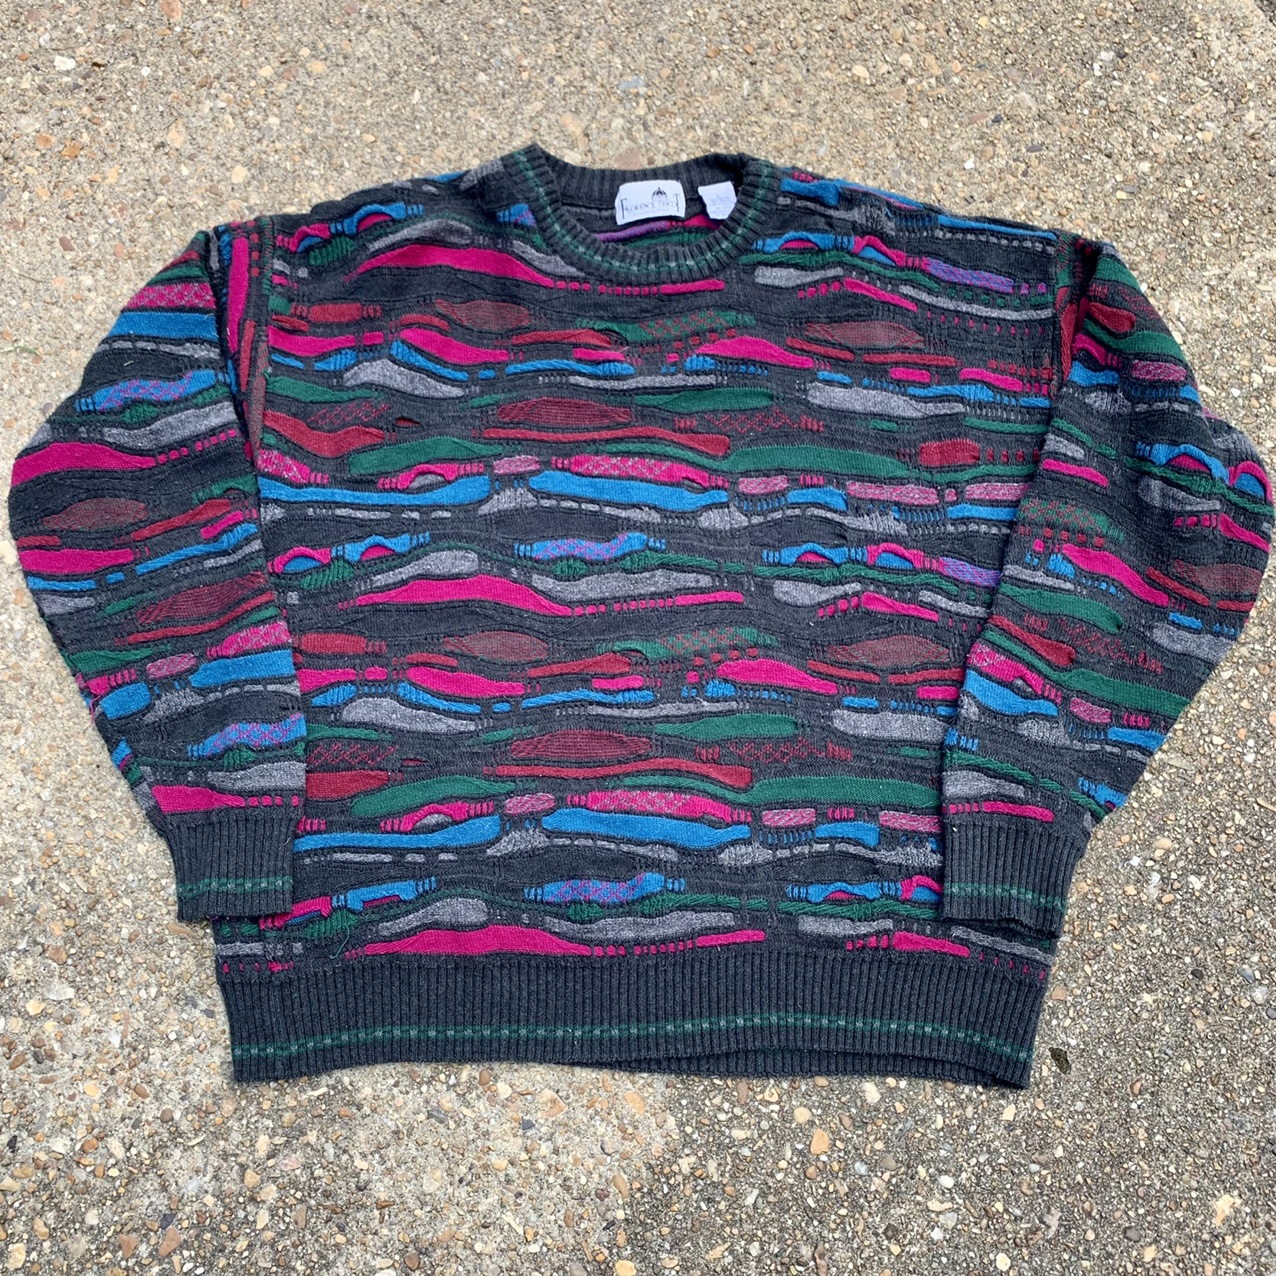 Product Image 1 - Vibtage late 80s/Early 90s Coogi-style